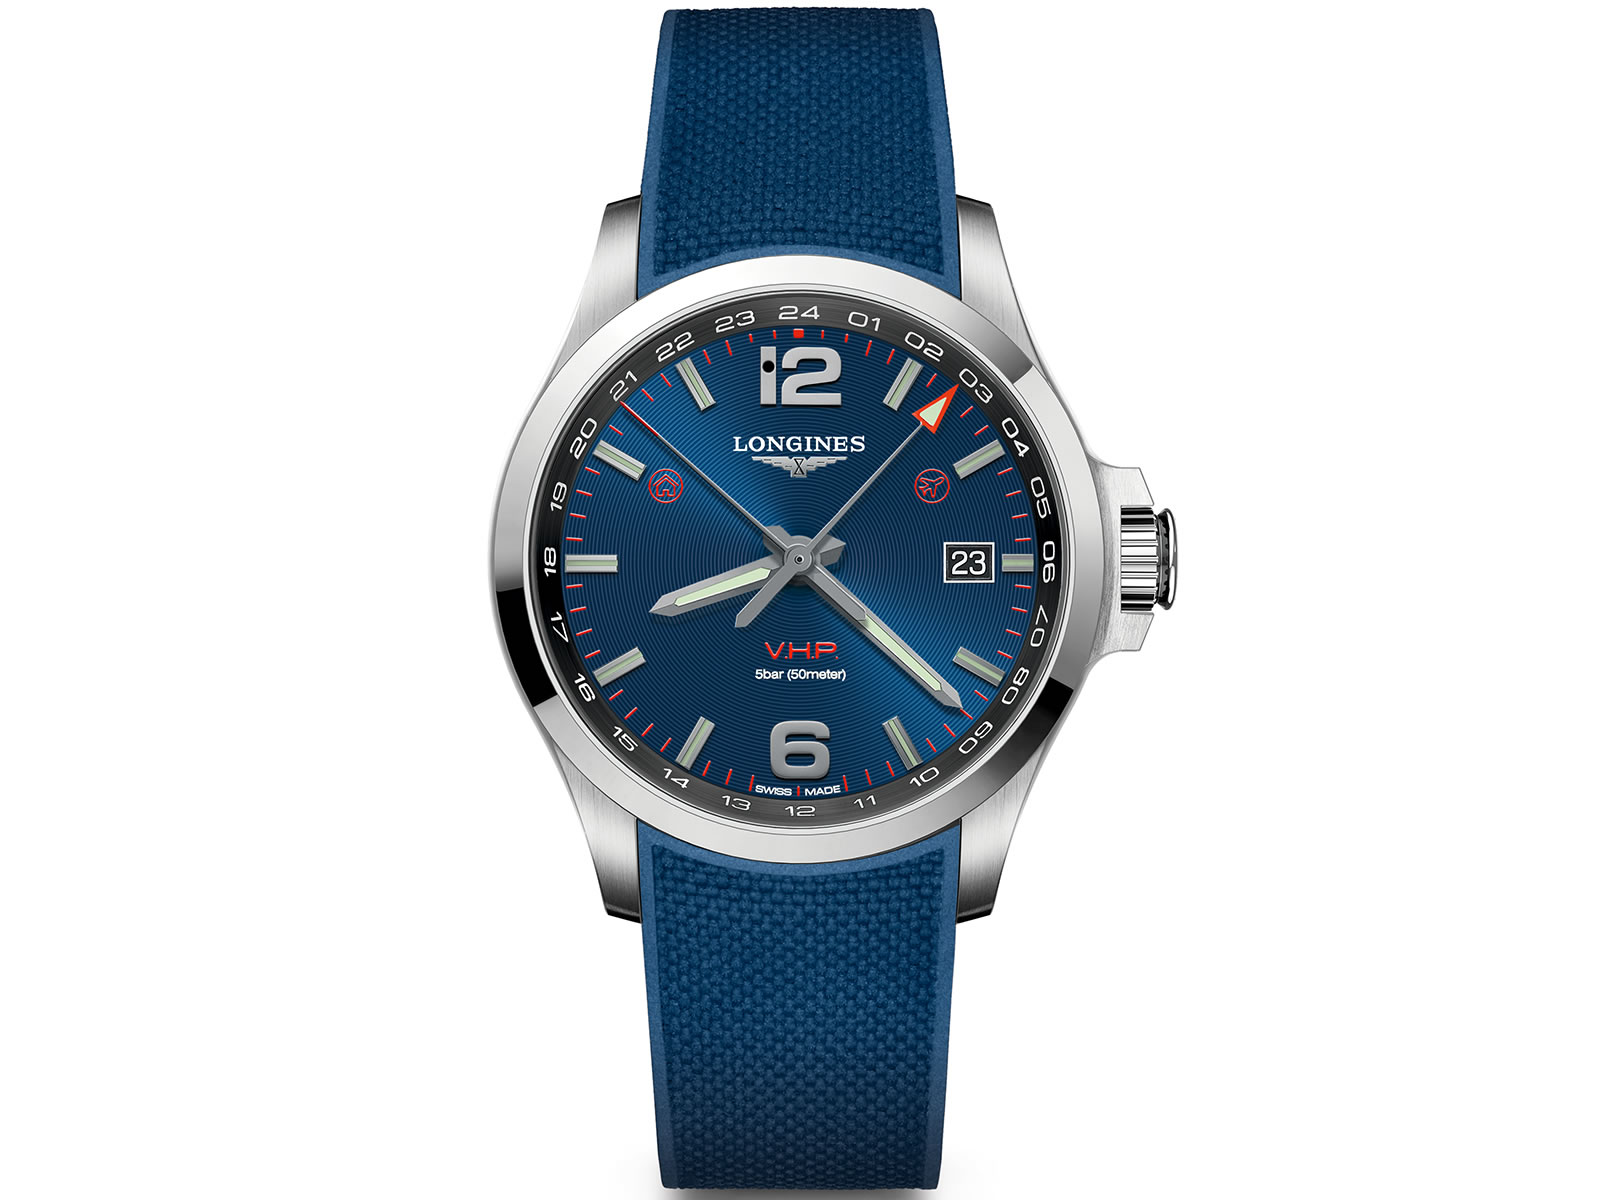 l3-728-4-96-9-longines-conquest-v-h-p-gmt-flash-setting-.jpg